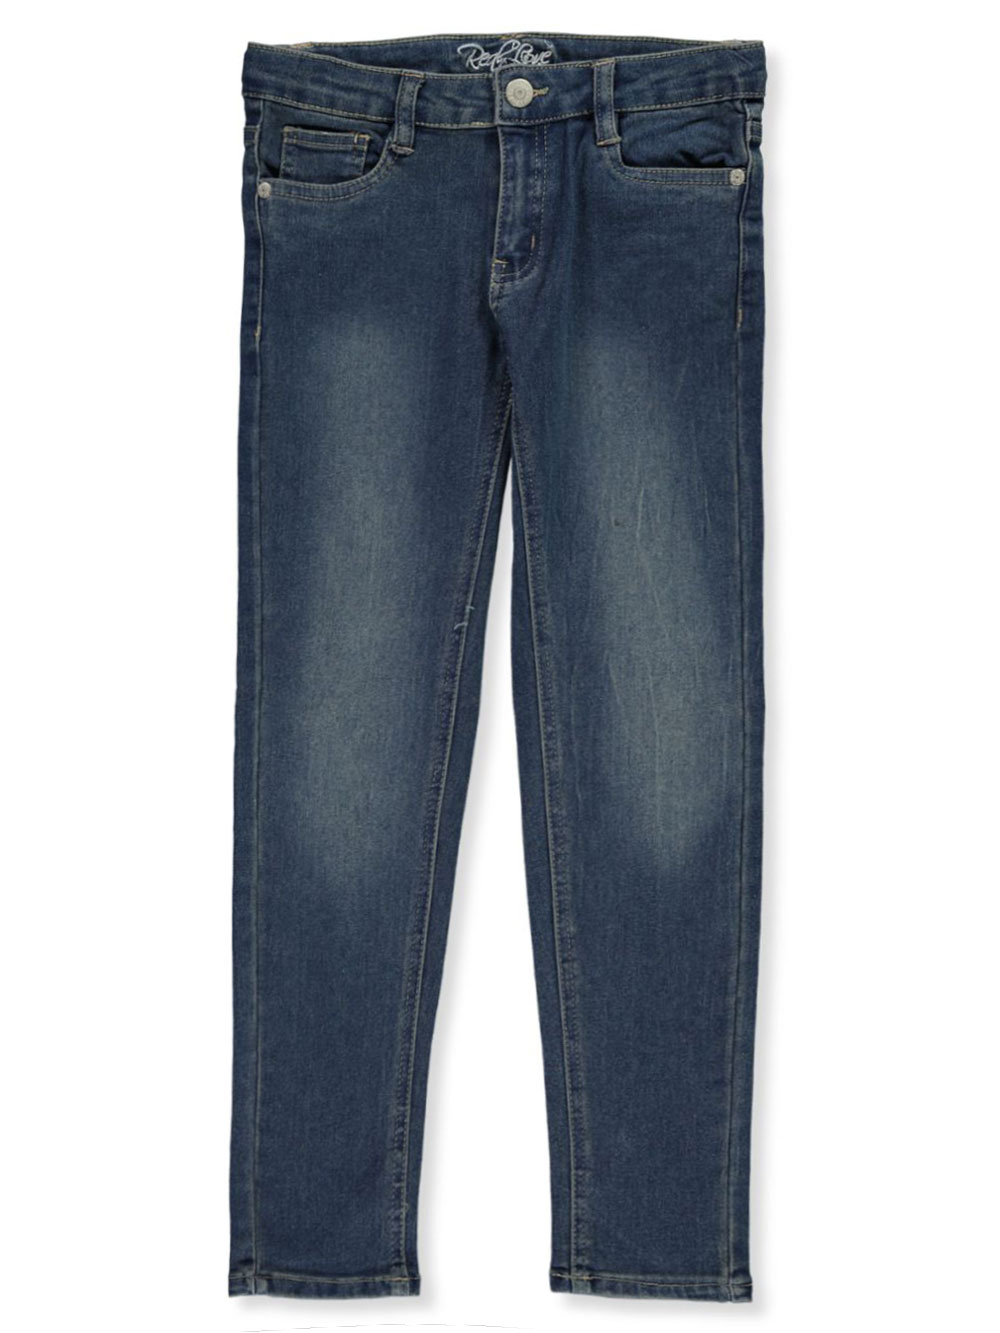 Girls' Stretch Denim Jeans